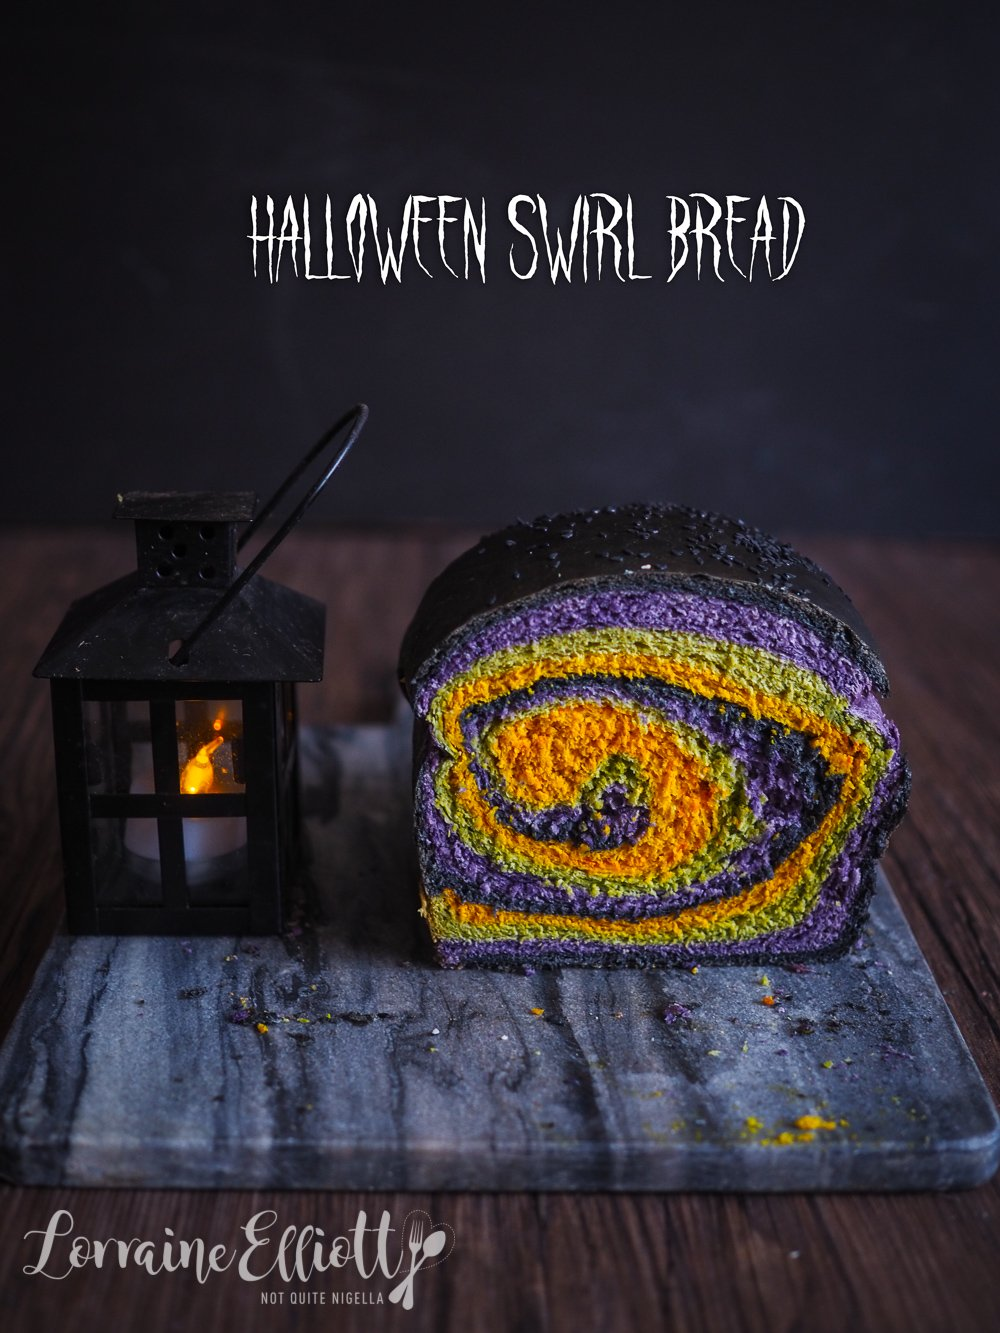 Halloween Bread recipe